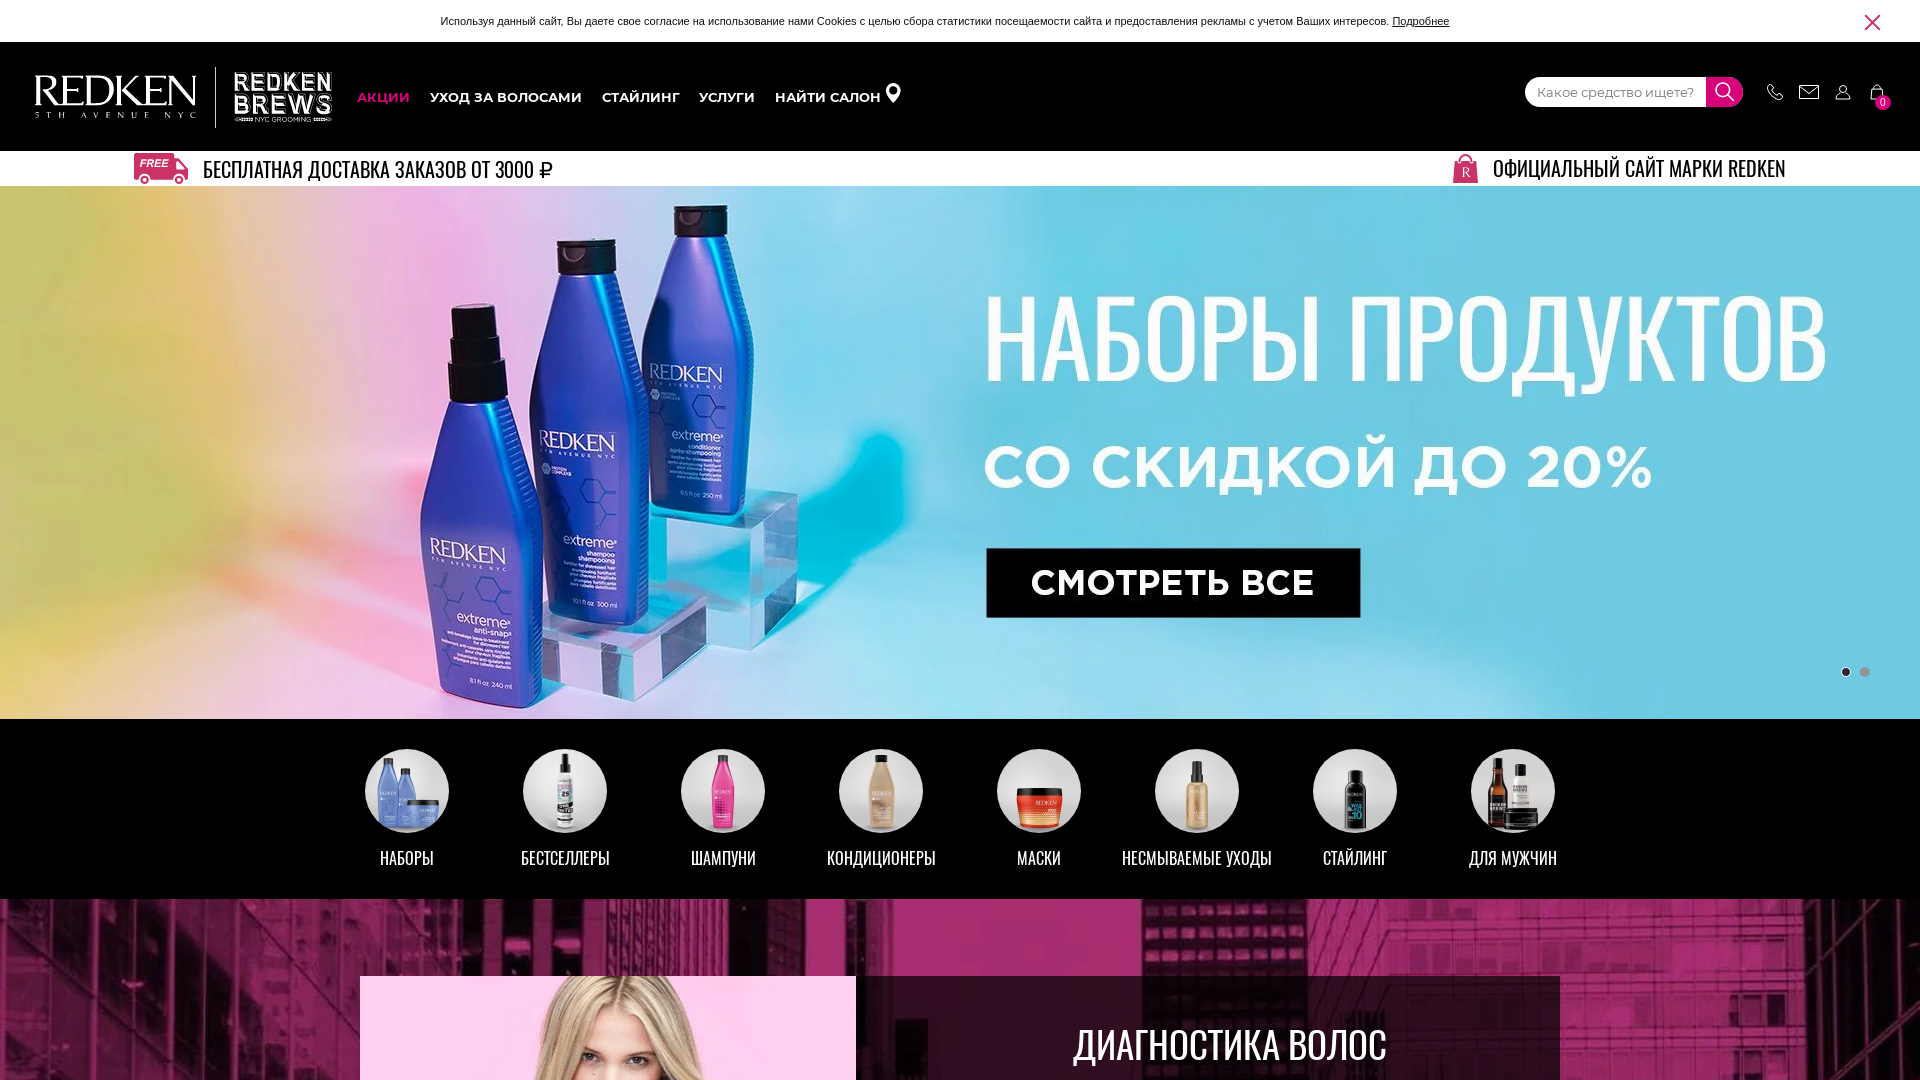 Redken website